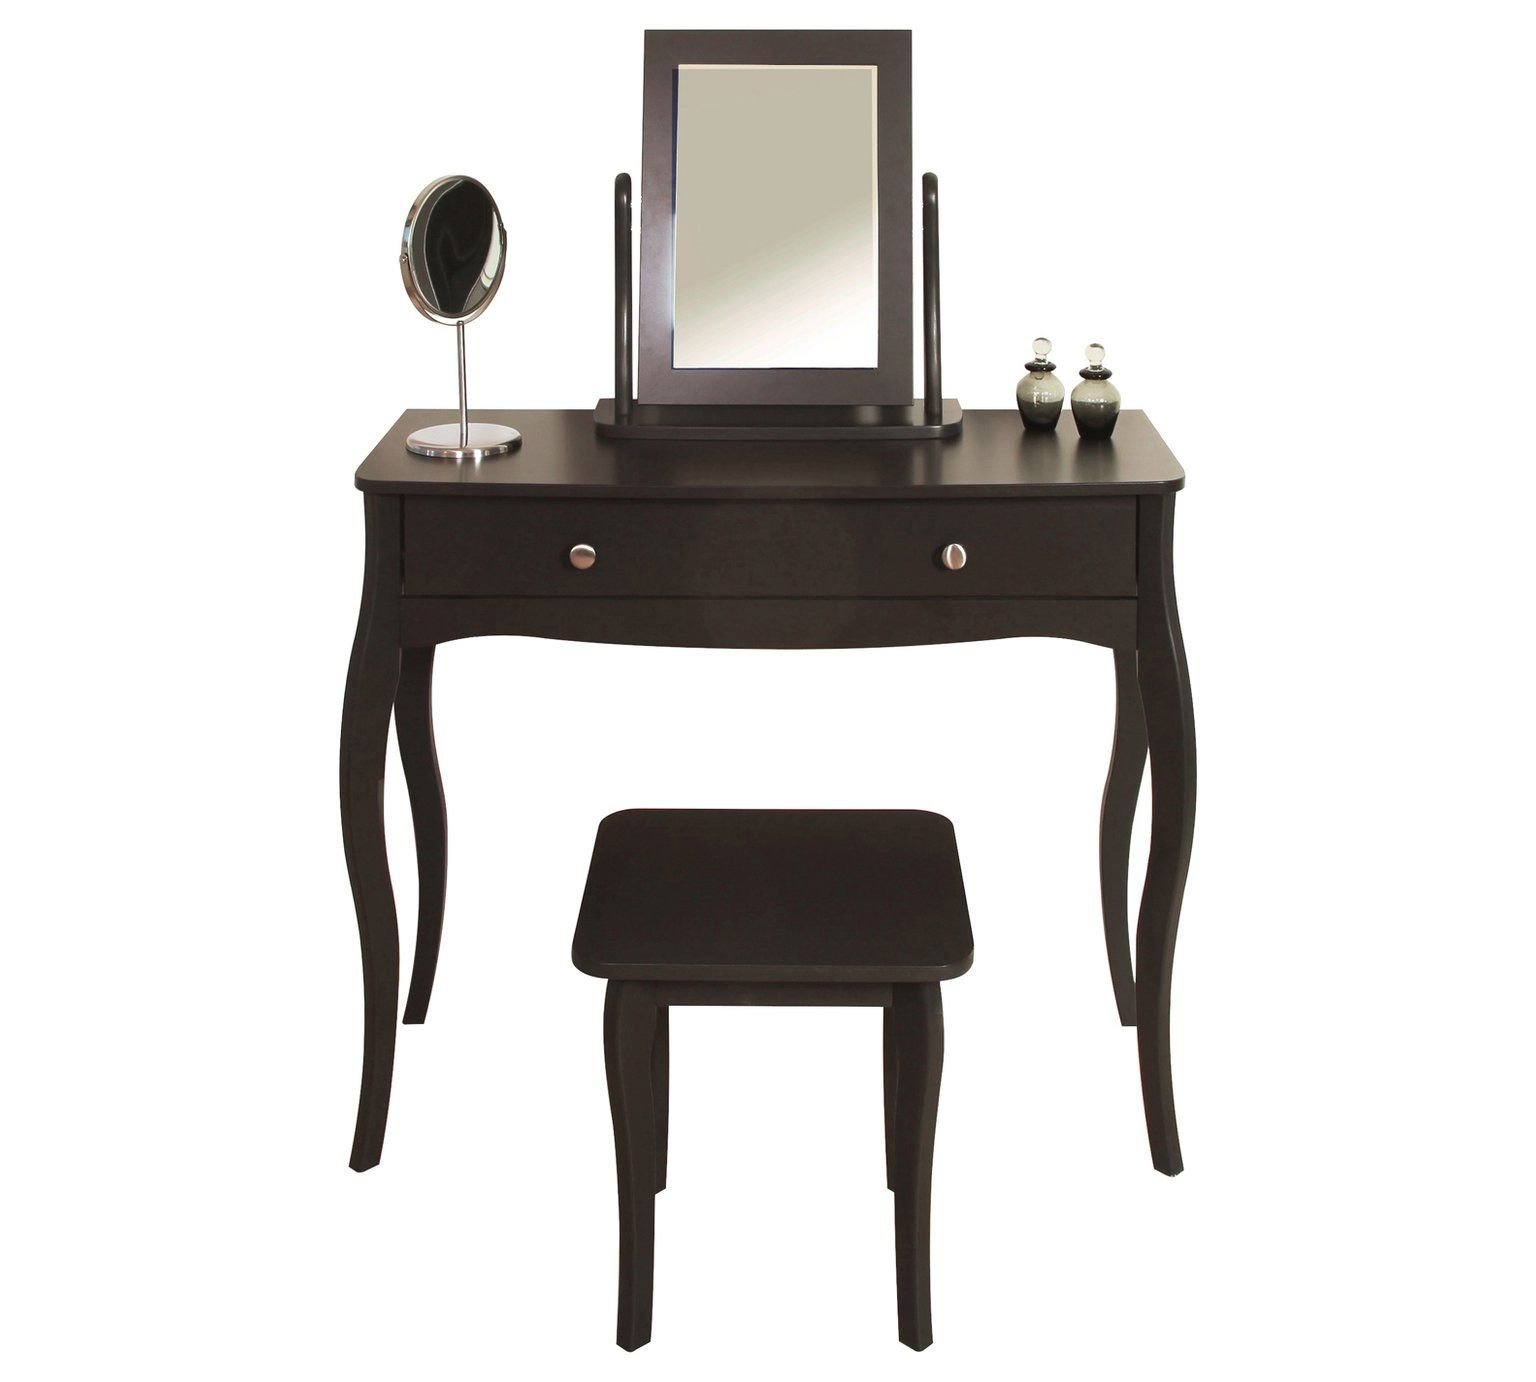 Buy Argos Home Amelie Dressing Table Mirror And Stool Grey Dressing Tables Dressing Table Argos Toddler Table Chairs Leather Chaise Lounge Chair